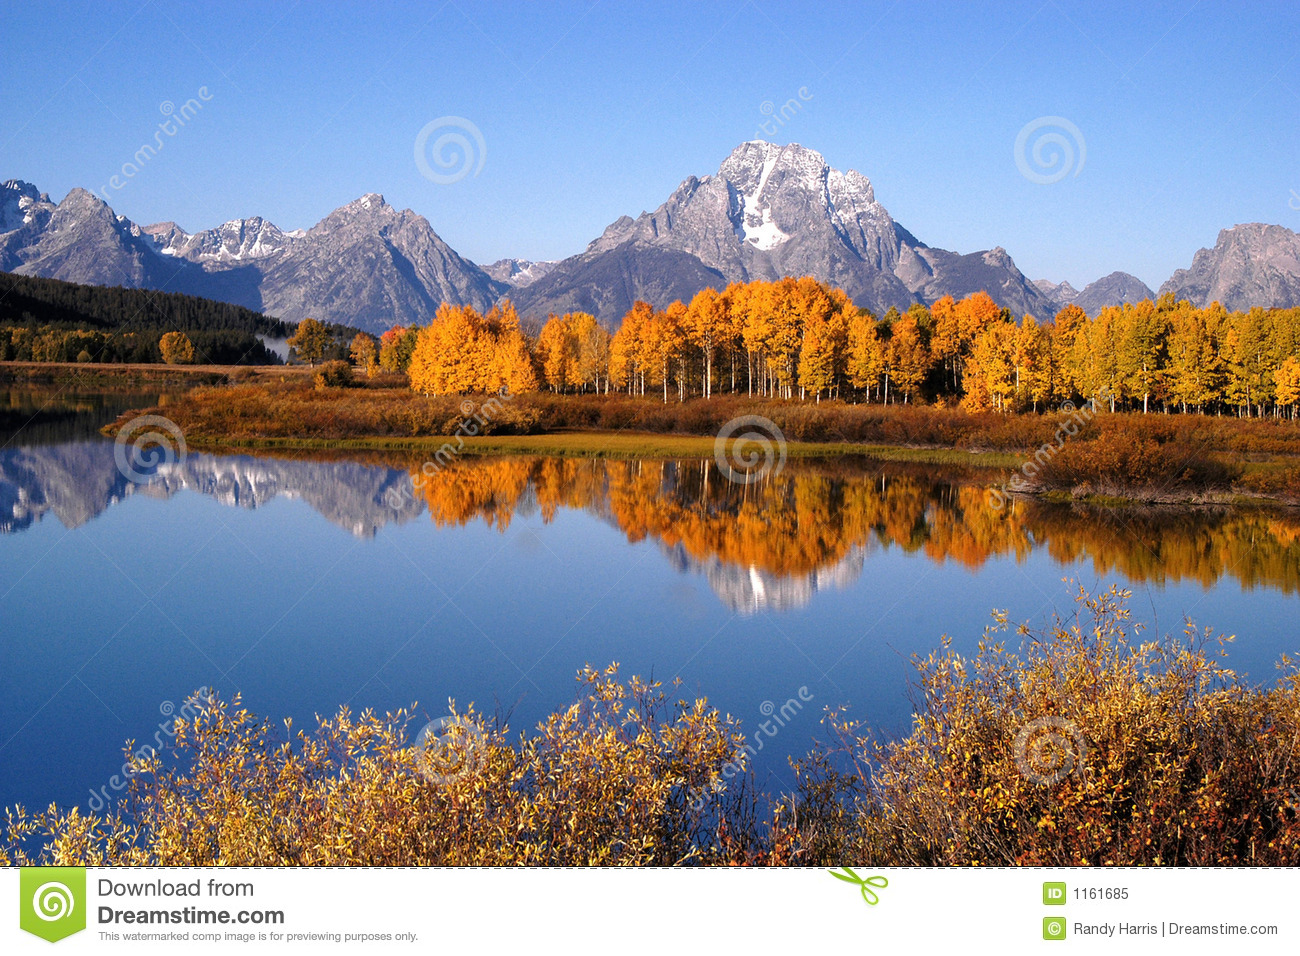 map grand teton national park with Royalty Free Stock Photo Oxbow Bend Near Grand Teton National Park Image1161685 on 4139419388 in addition Chapel of the Transfiguration besides Short Grand Teton National Park Hikes moreover 24011474471 as well Devils Garden Arches.